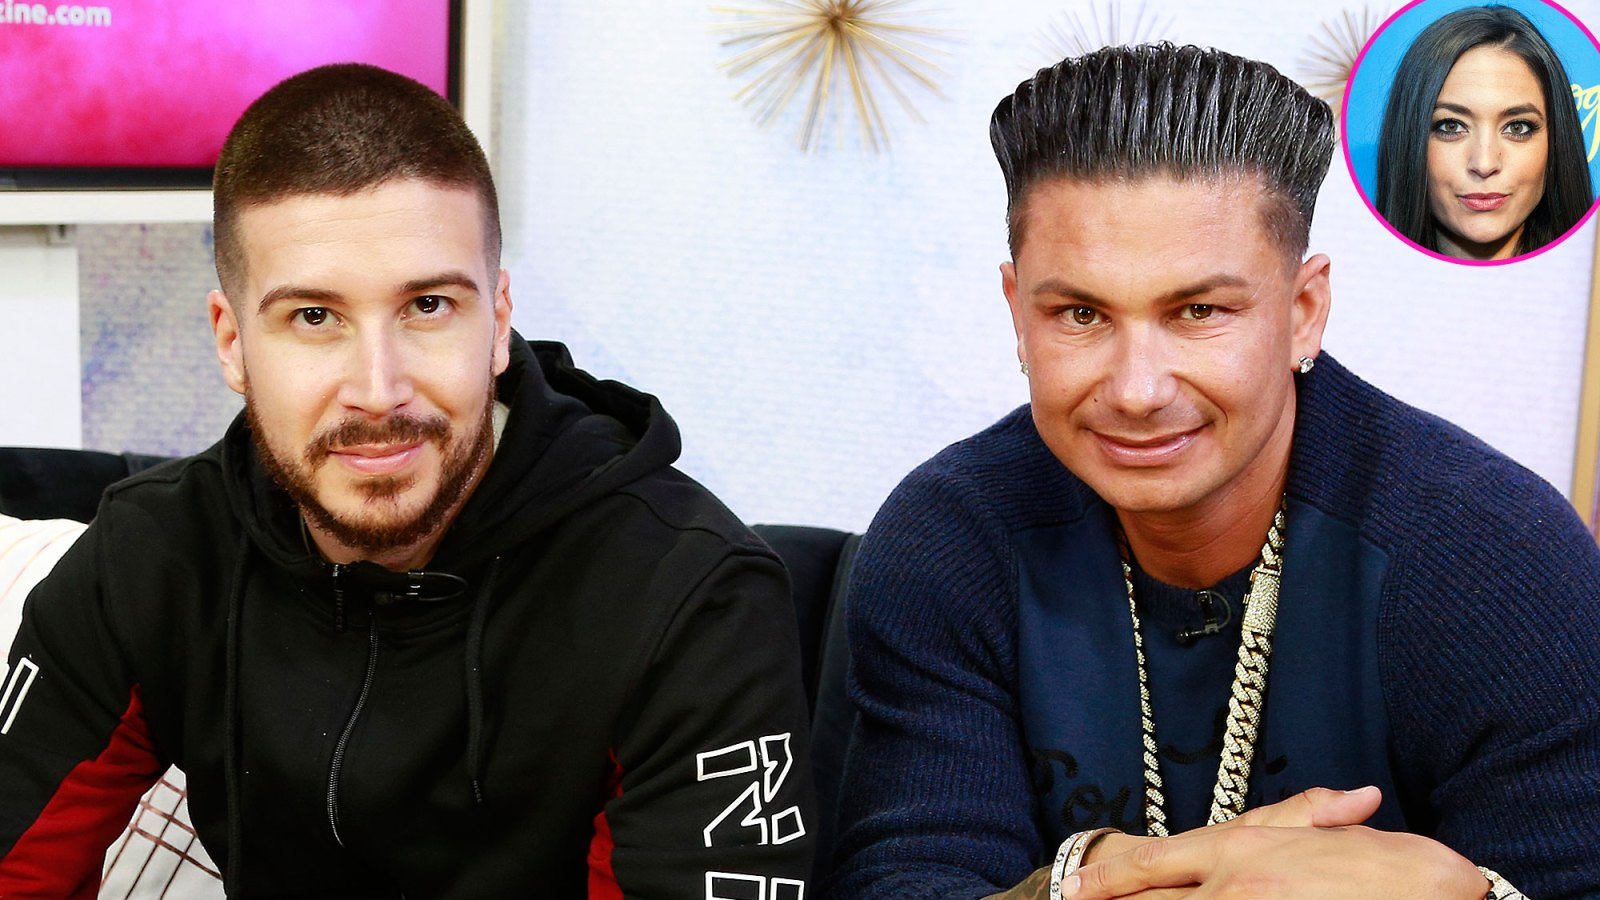 jersey shore's pauly d, vinny haven't been invited to